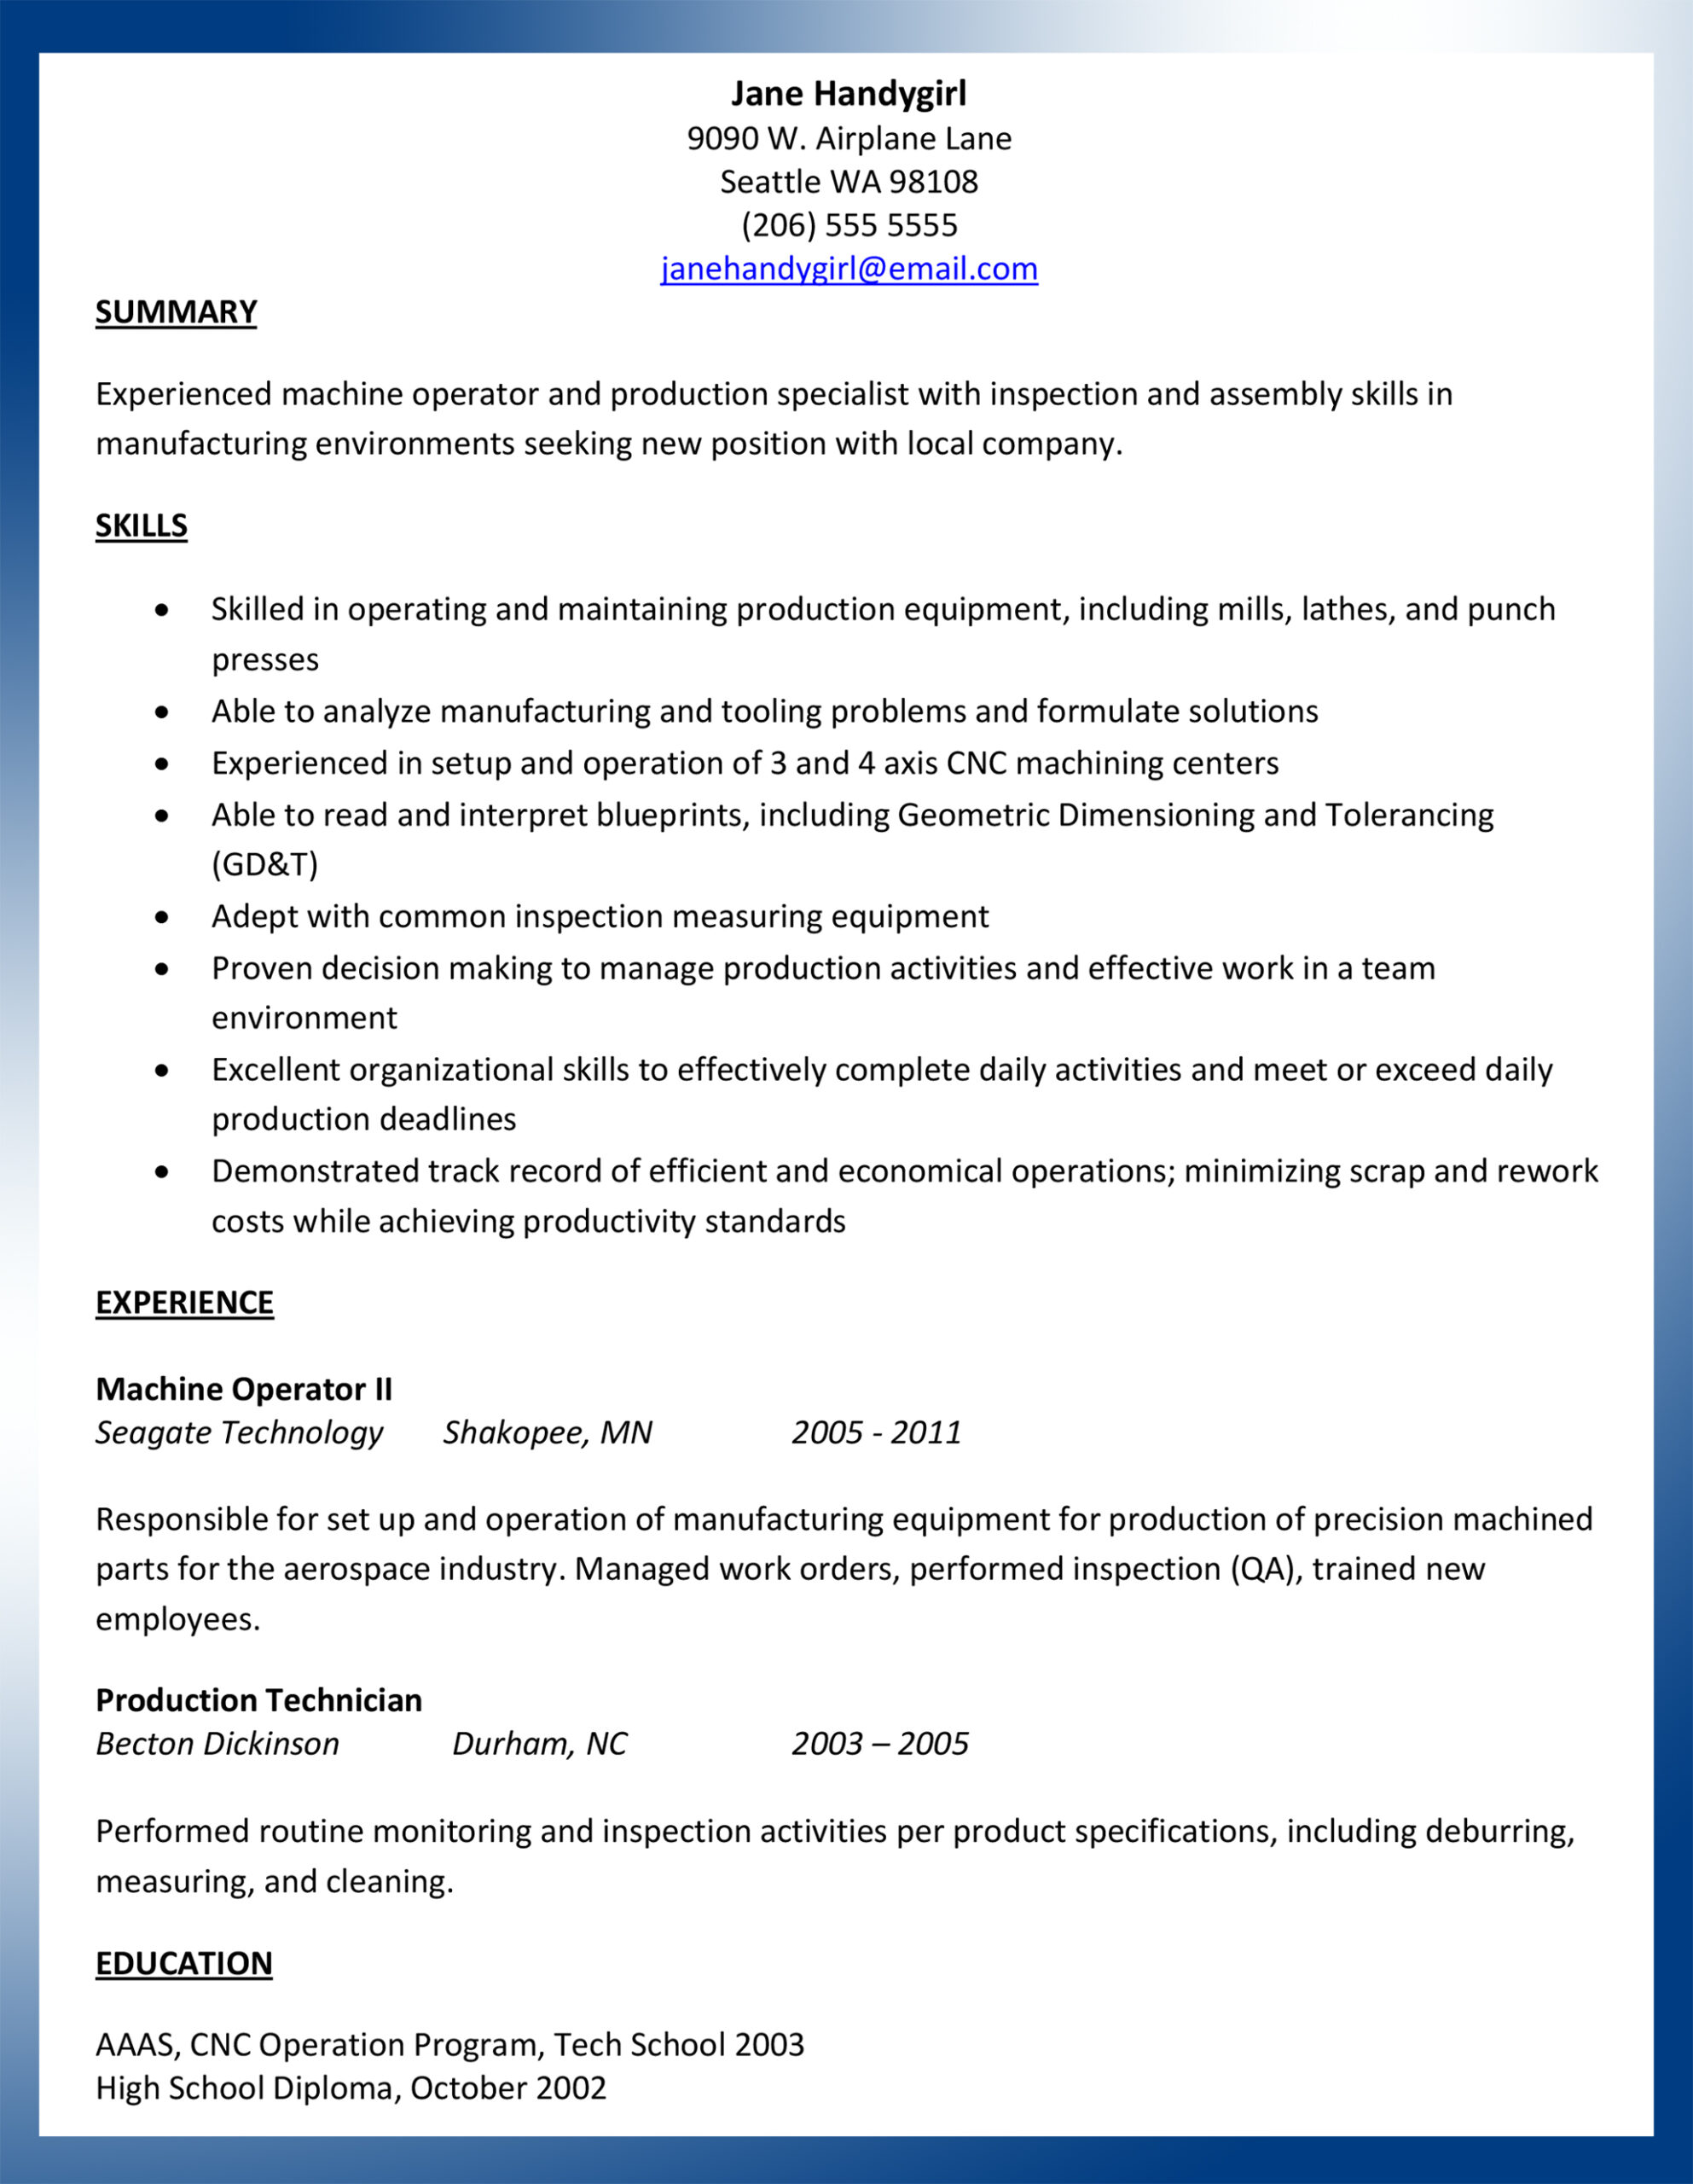 sample machinist resume ajac cnc operator with research experience healthcare Resume Cnc Operator Resume Sample